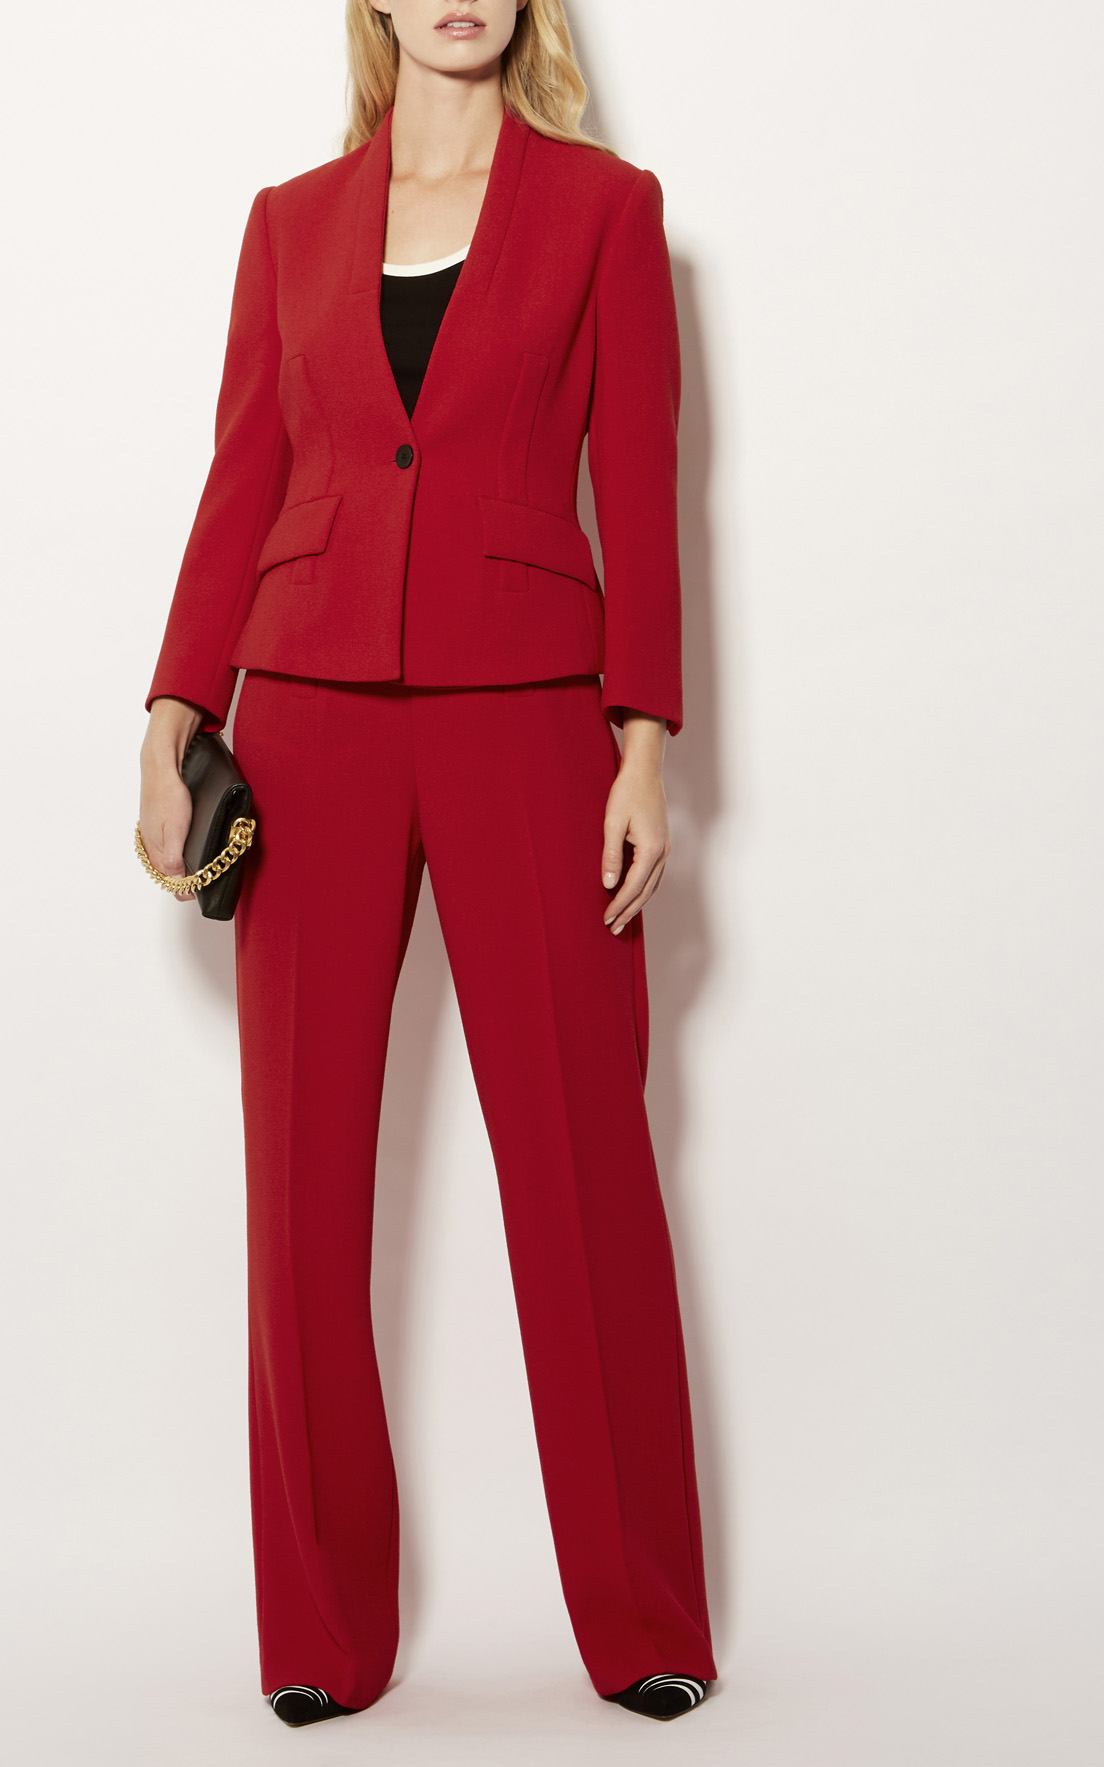 Karen Millen Red Tailored Suit Jacket, £199, and Wide-Leg Trousers, £140